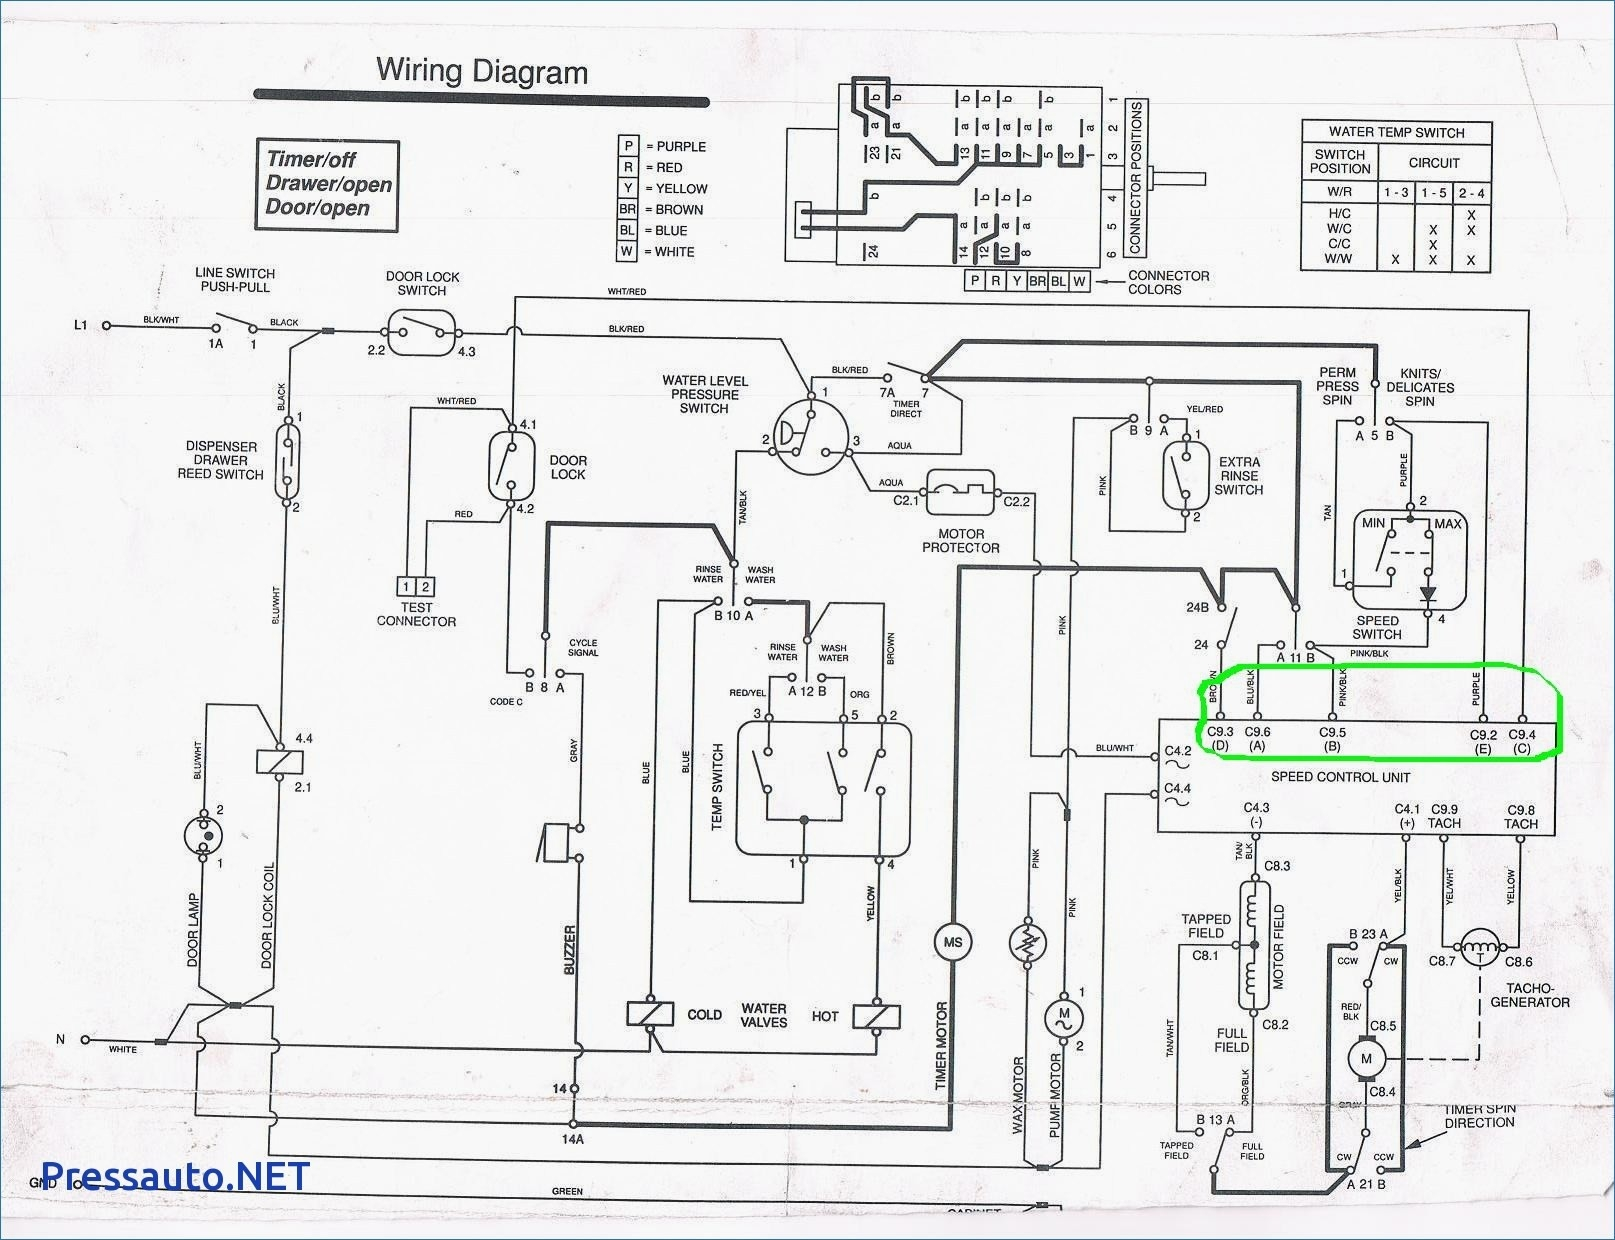 Whirlpool Washer Wiring Schematic